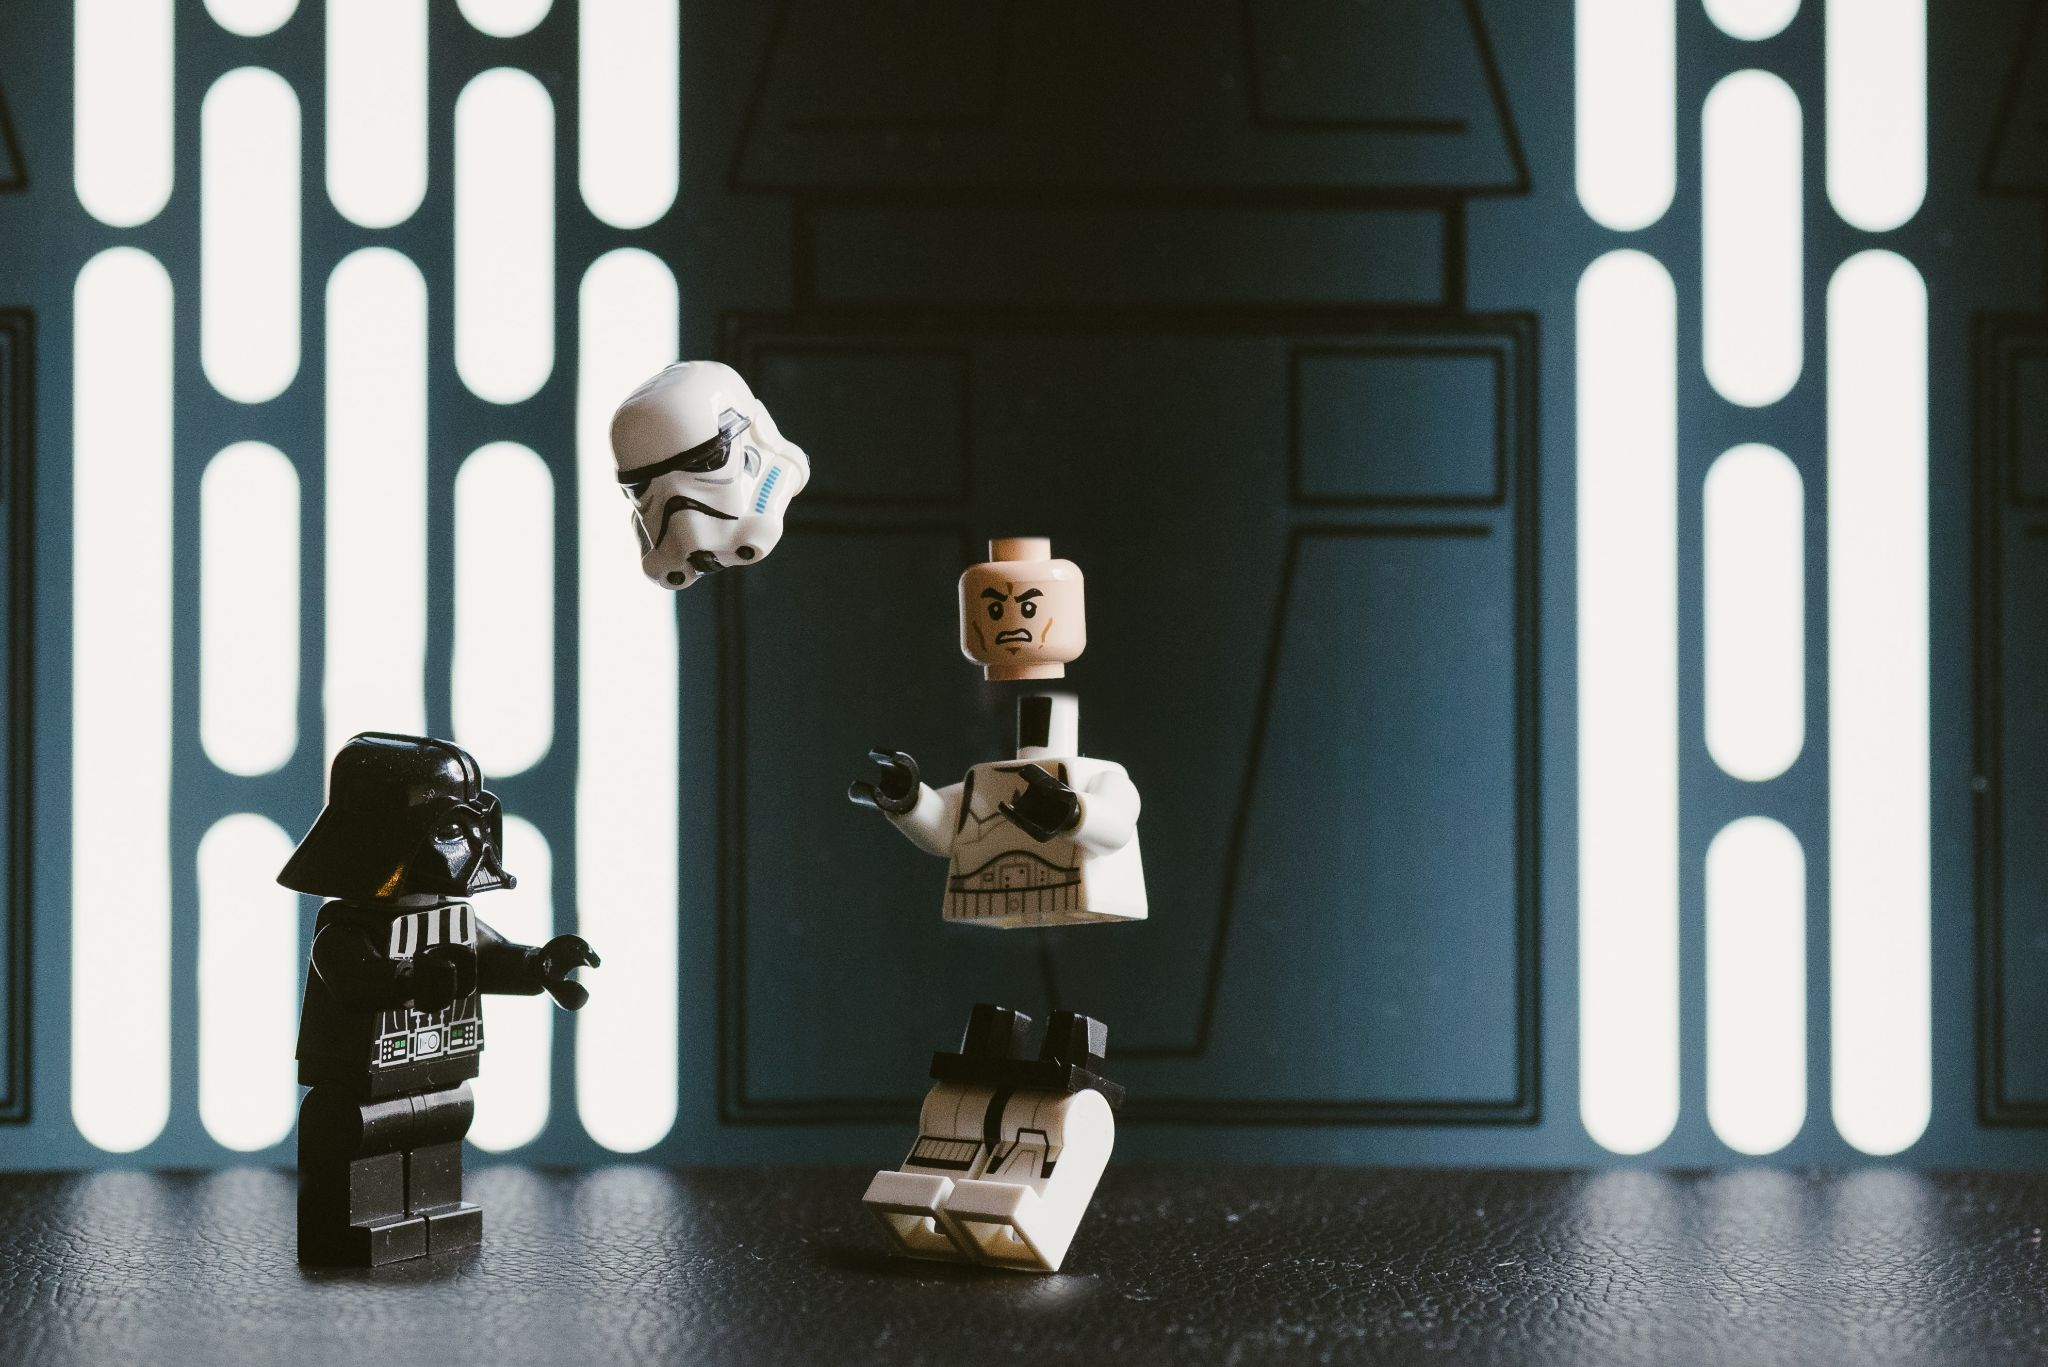 Lego Star Wars Stormtrooper being pulled apart by Darth Vader